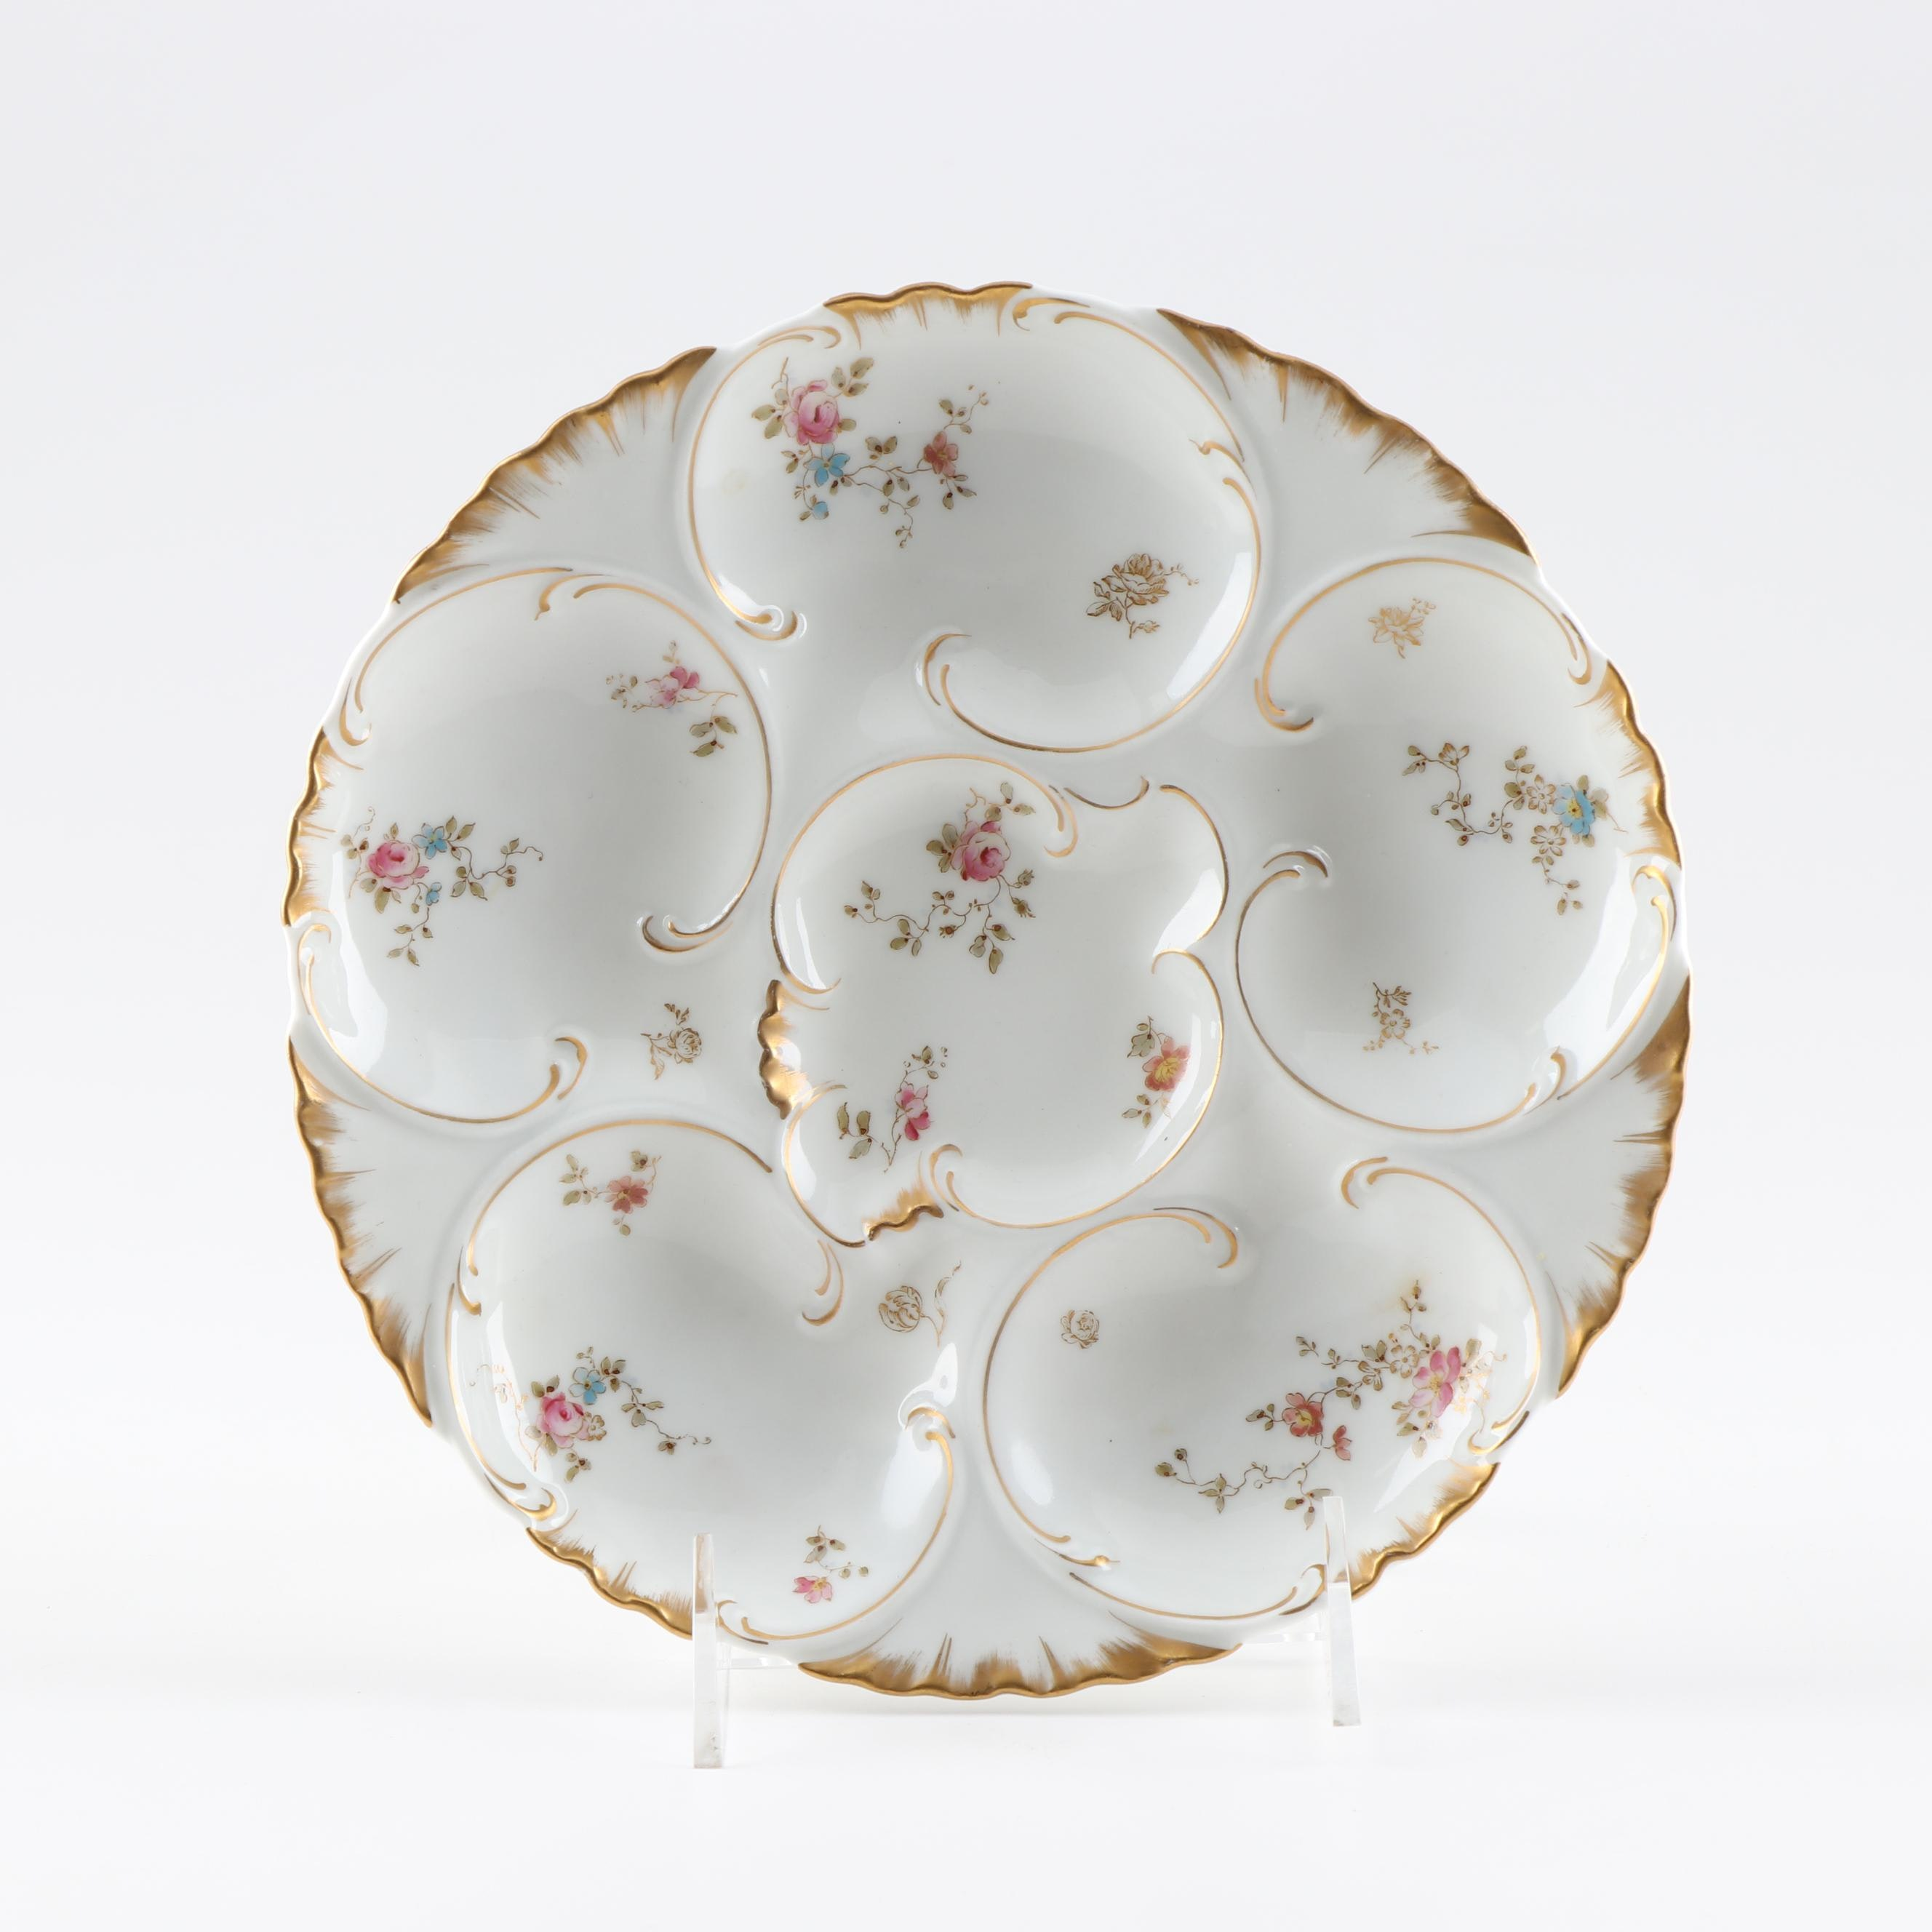 Haviland & Co. Hand Painted Porcelain Oyster Plate